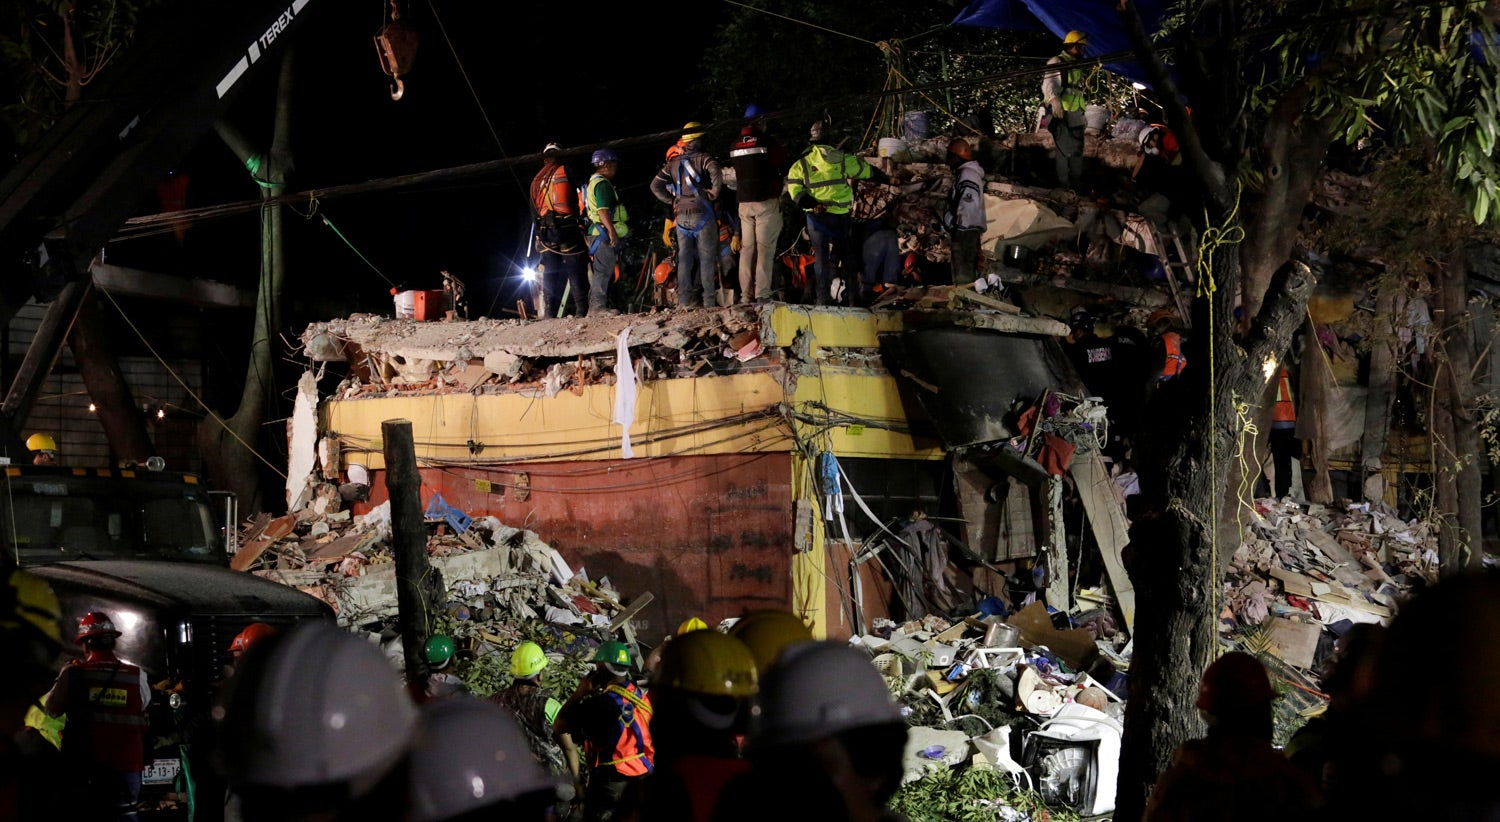 México contabiliza 305 mortos no terremoto do dia 19